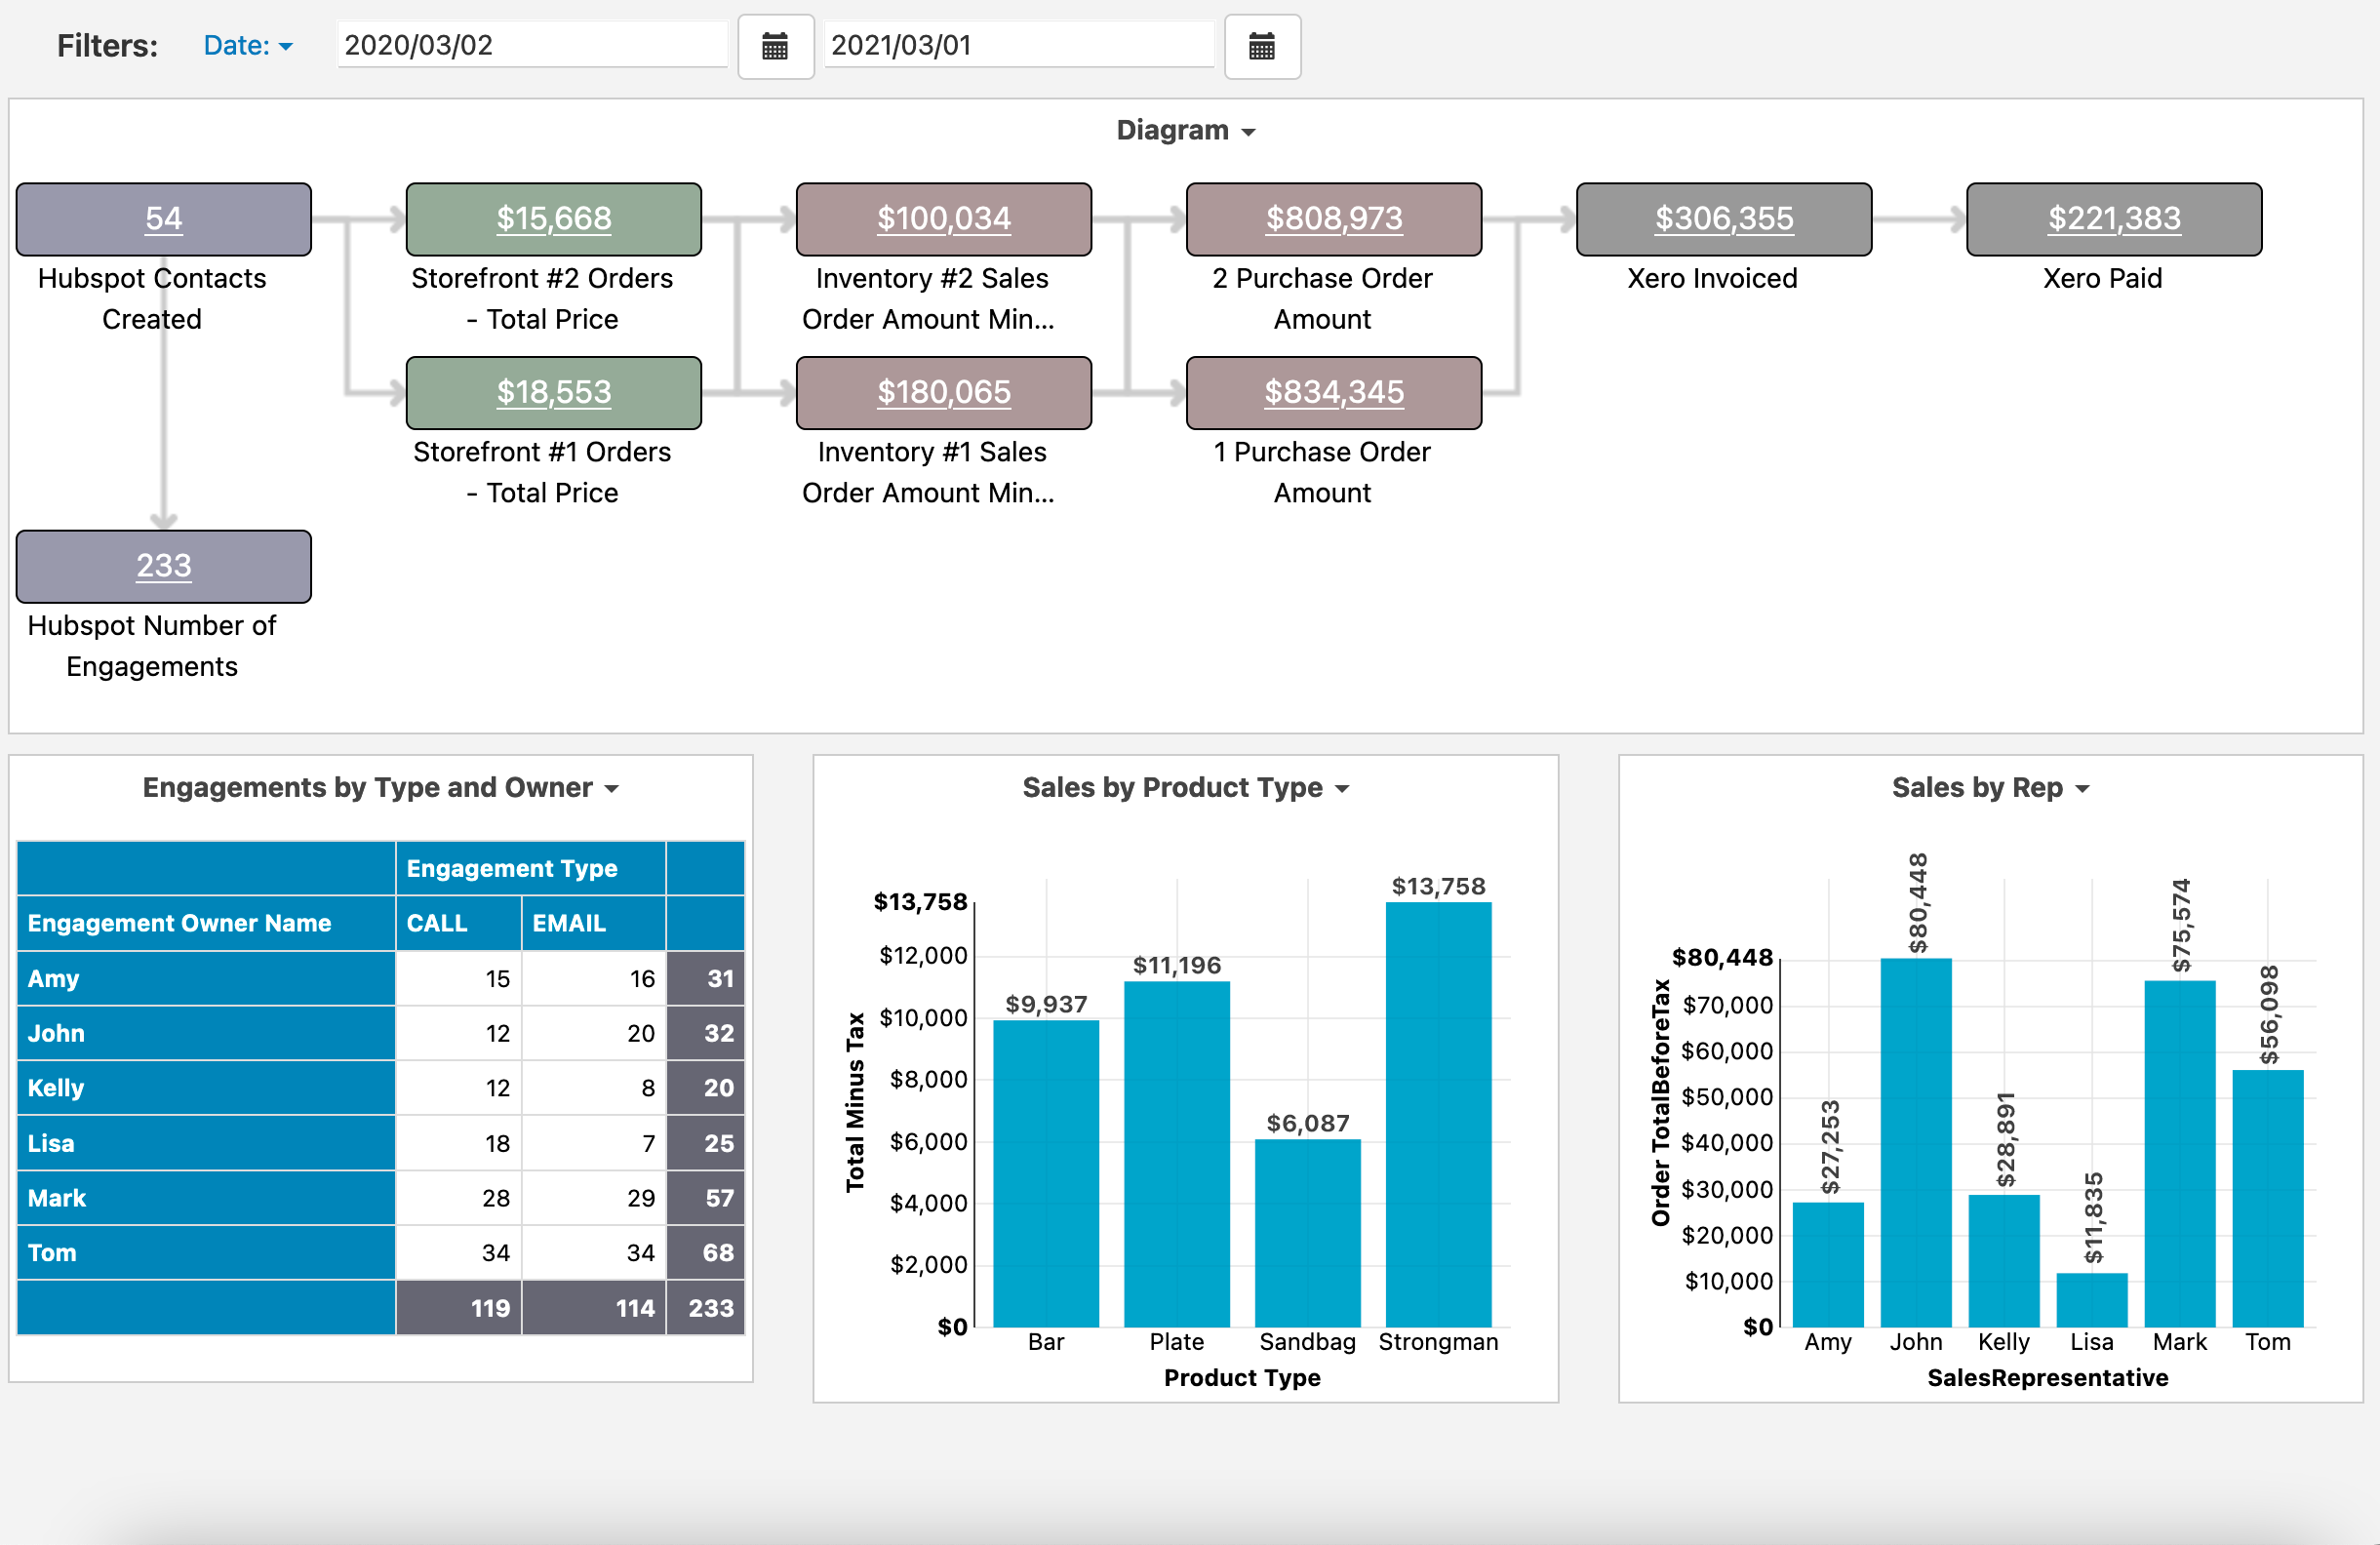 Easy Insight Software - Auto generate dashboards covering multiple systems. Track orders through CRM, e-commerce, inventory, shipping, and accounting. Validate SKUs, customers, and invoices across multiple systems.